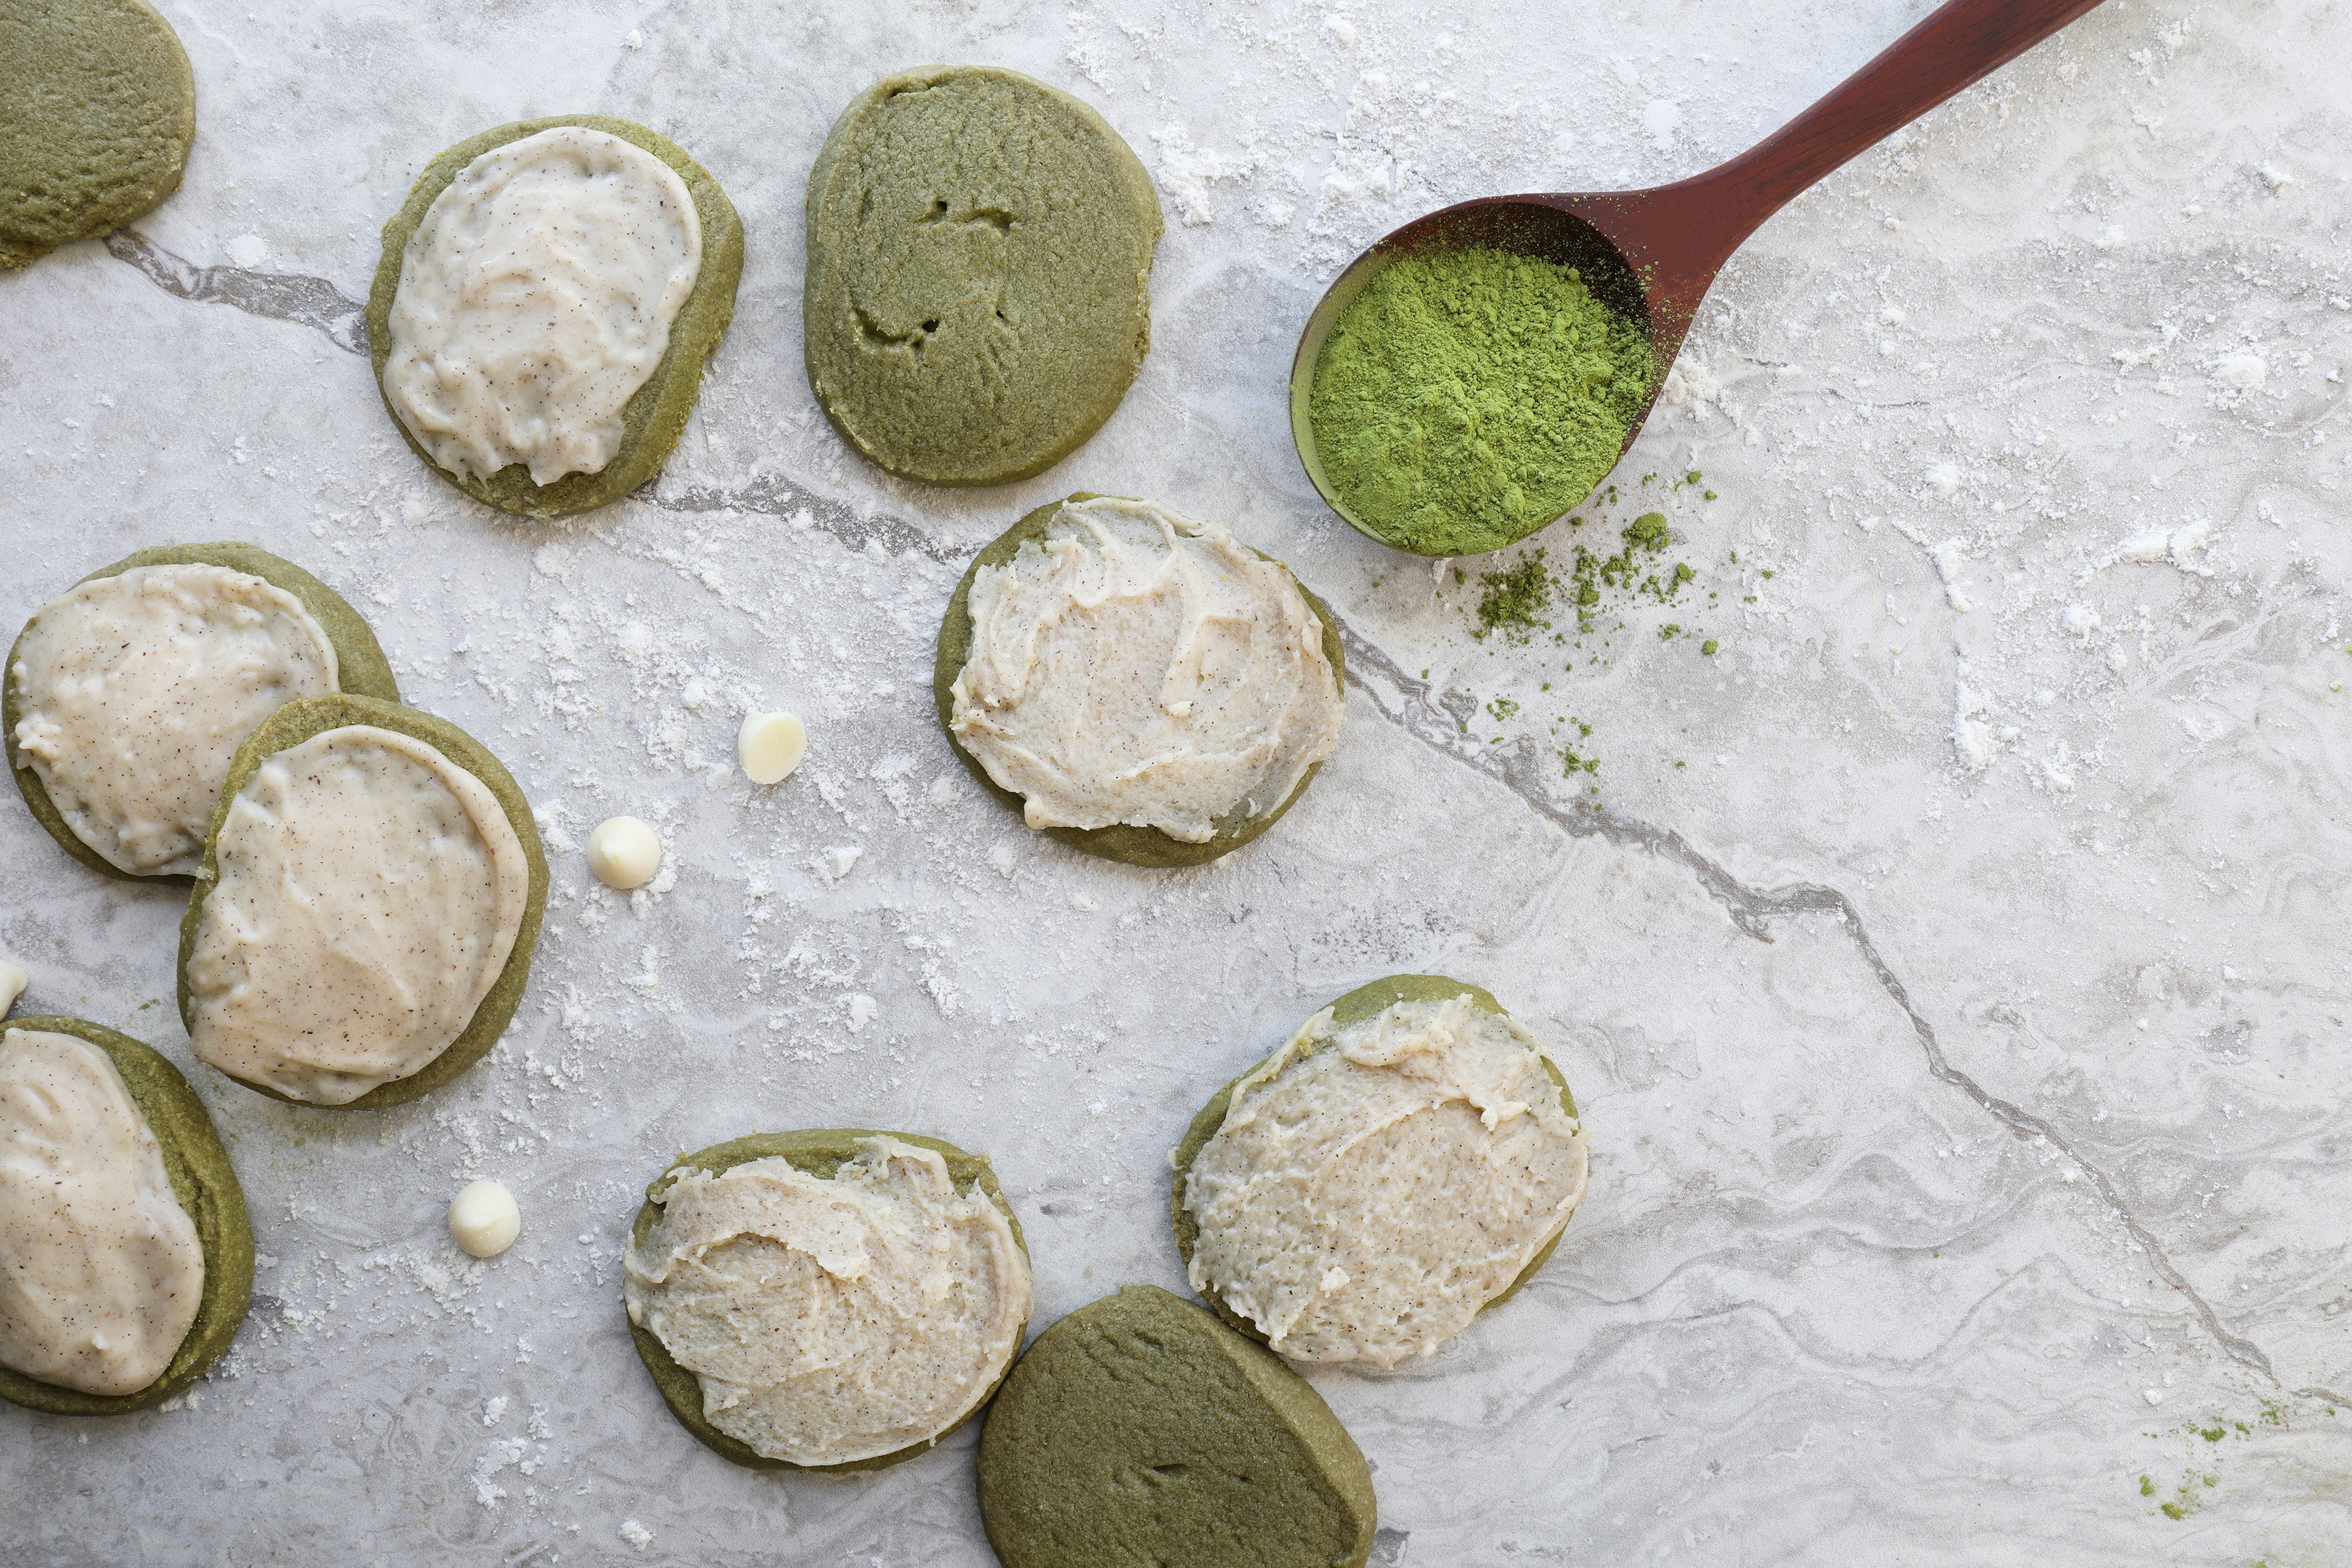 Matcha shortbread cookies sitting on granite counter with spoon of matcha powder and white chocolate chips